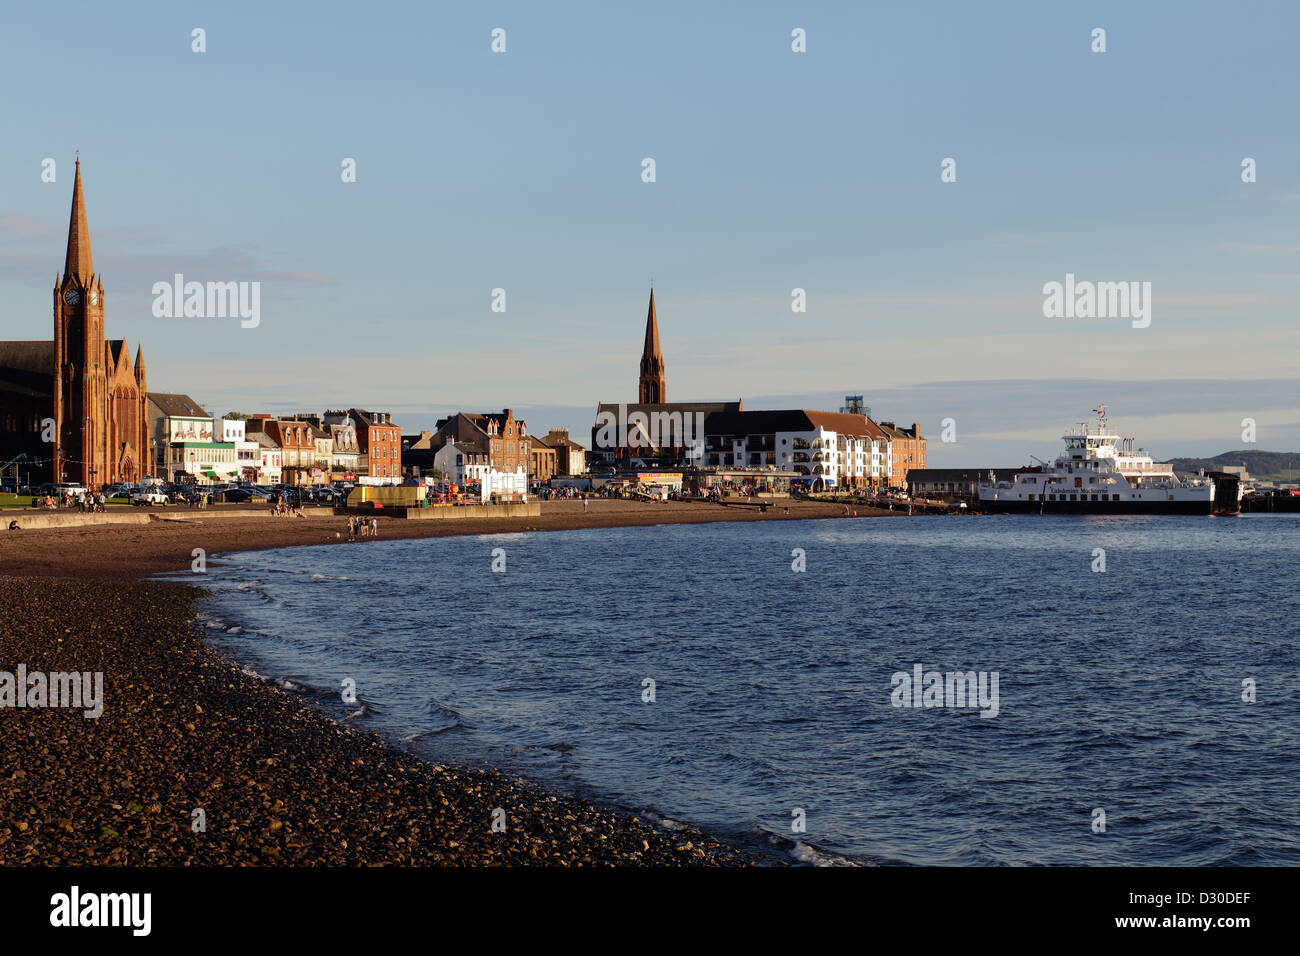 Late evening sunshine over the Firth of Clyde in the town of Largs in Ayrshire, Scotland, UK - Stock Image